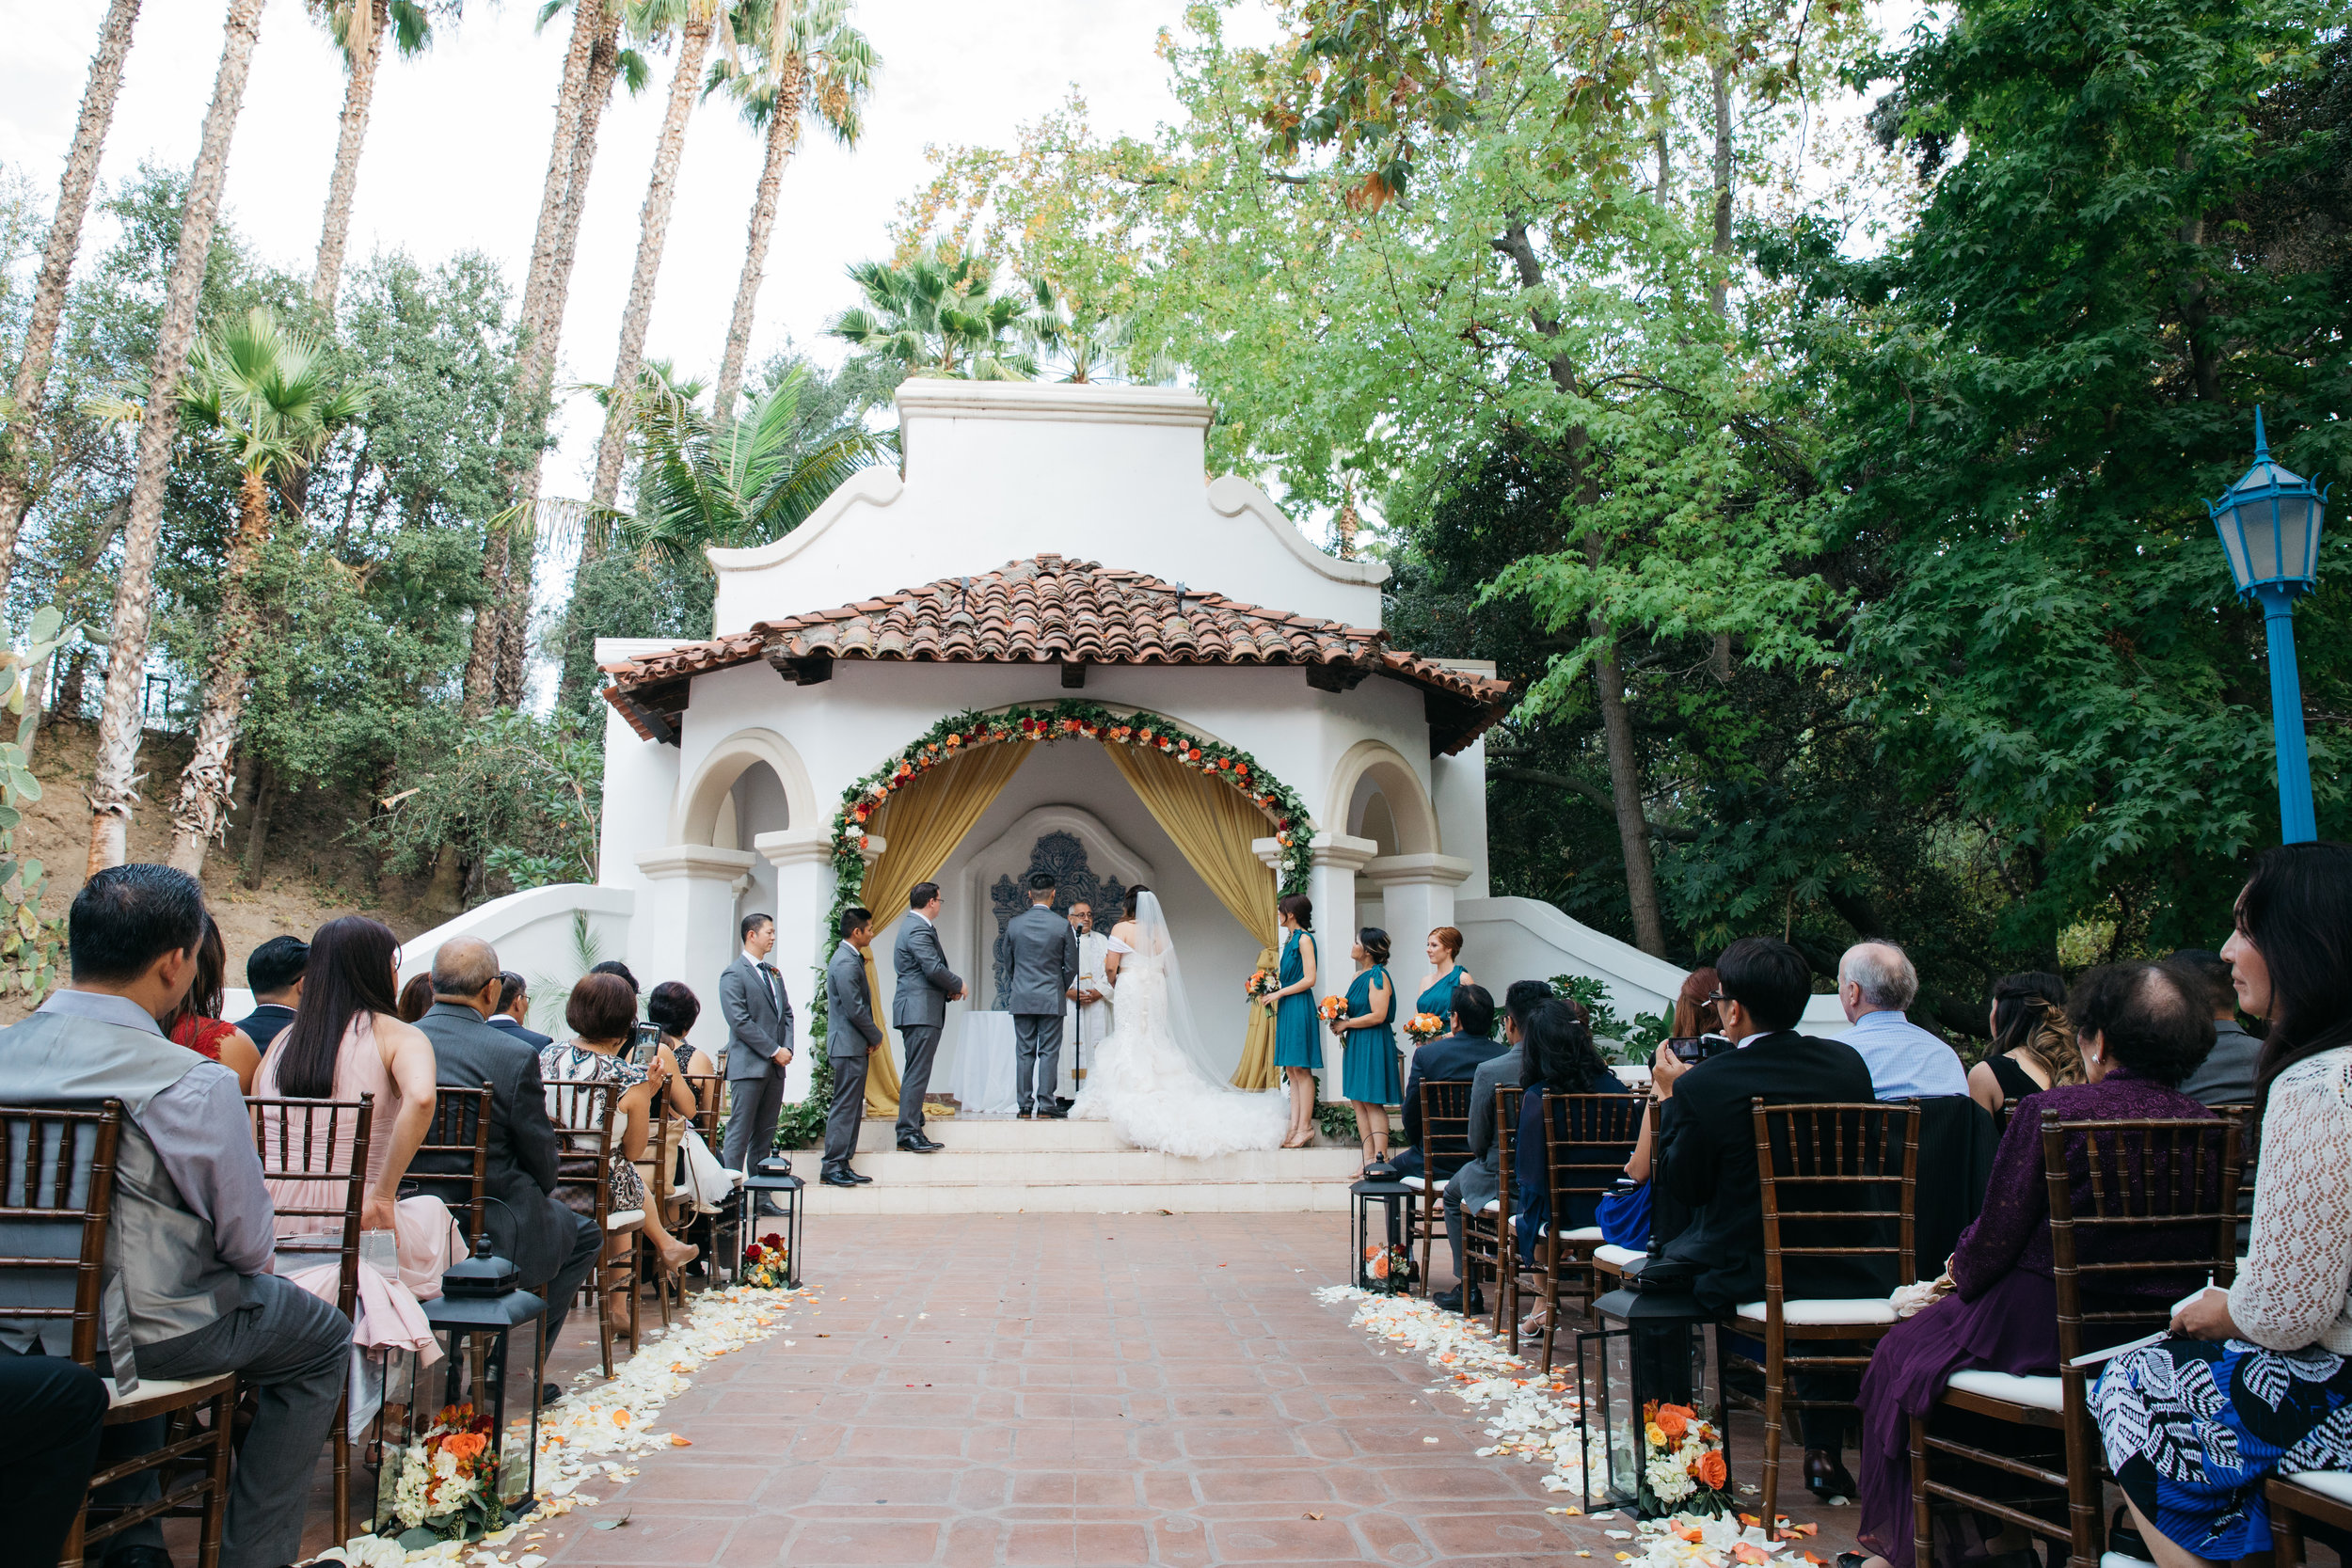 rancho-las-lomas-wedding-planner-best-wedding-planner-in-southern-california46.jpg